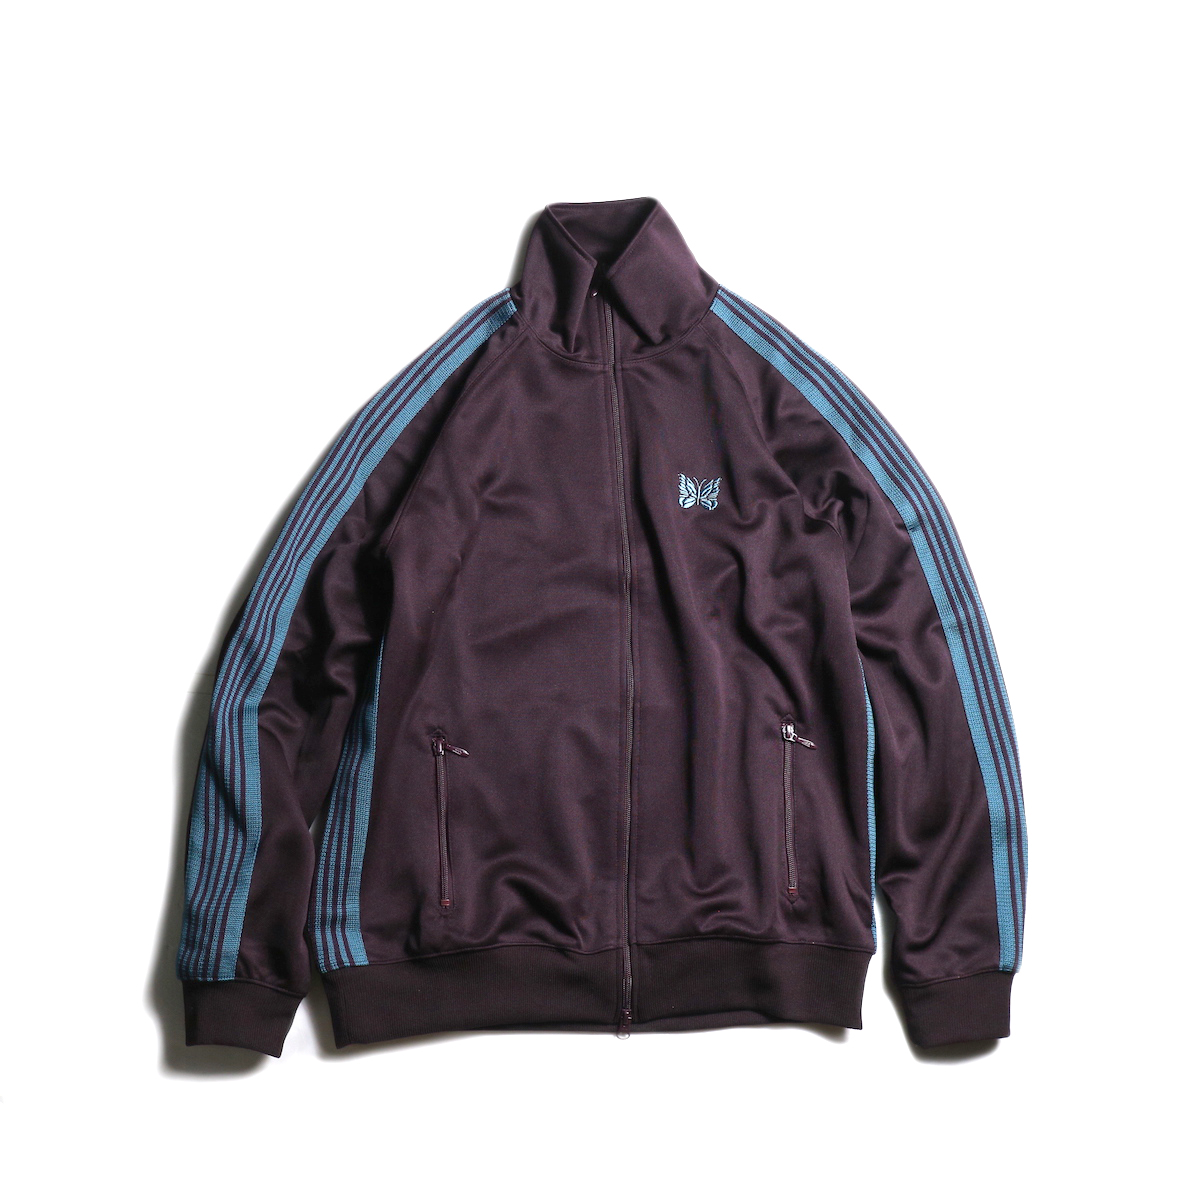 Needles / TRACK JACKET - POLY SMOOTH (Bordeaux)